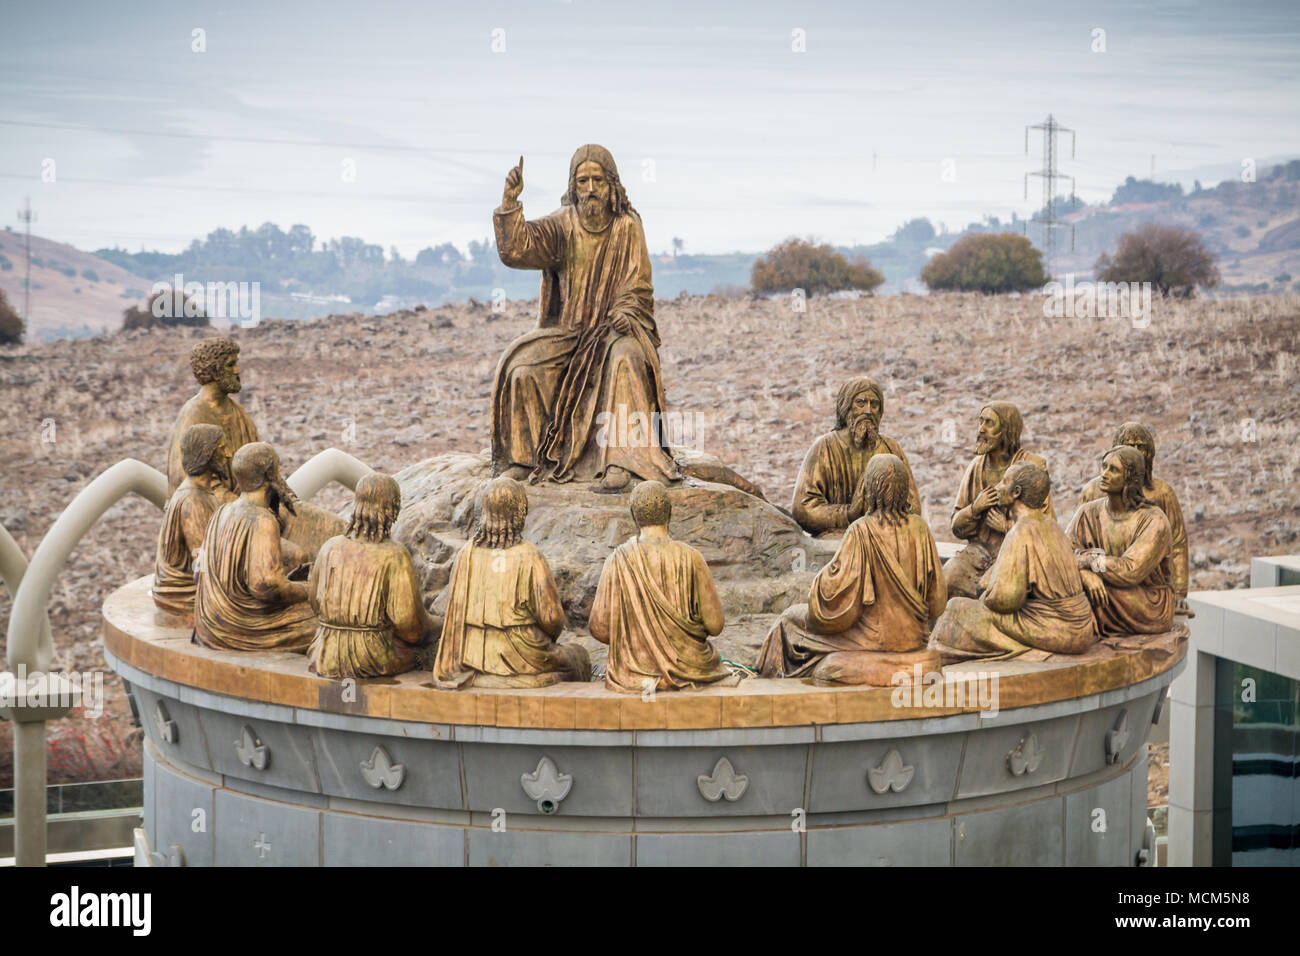 GALILEE, ISRAEL - DECEMBER 3: The statues of Jesus and Twelve Apostles in Domus Galileae on the Mount of Beatitudes near the Sea of Galilee in Galilee Stock Photo